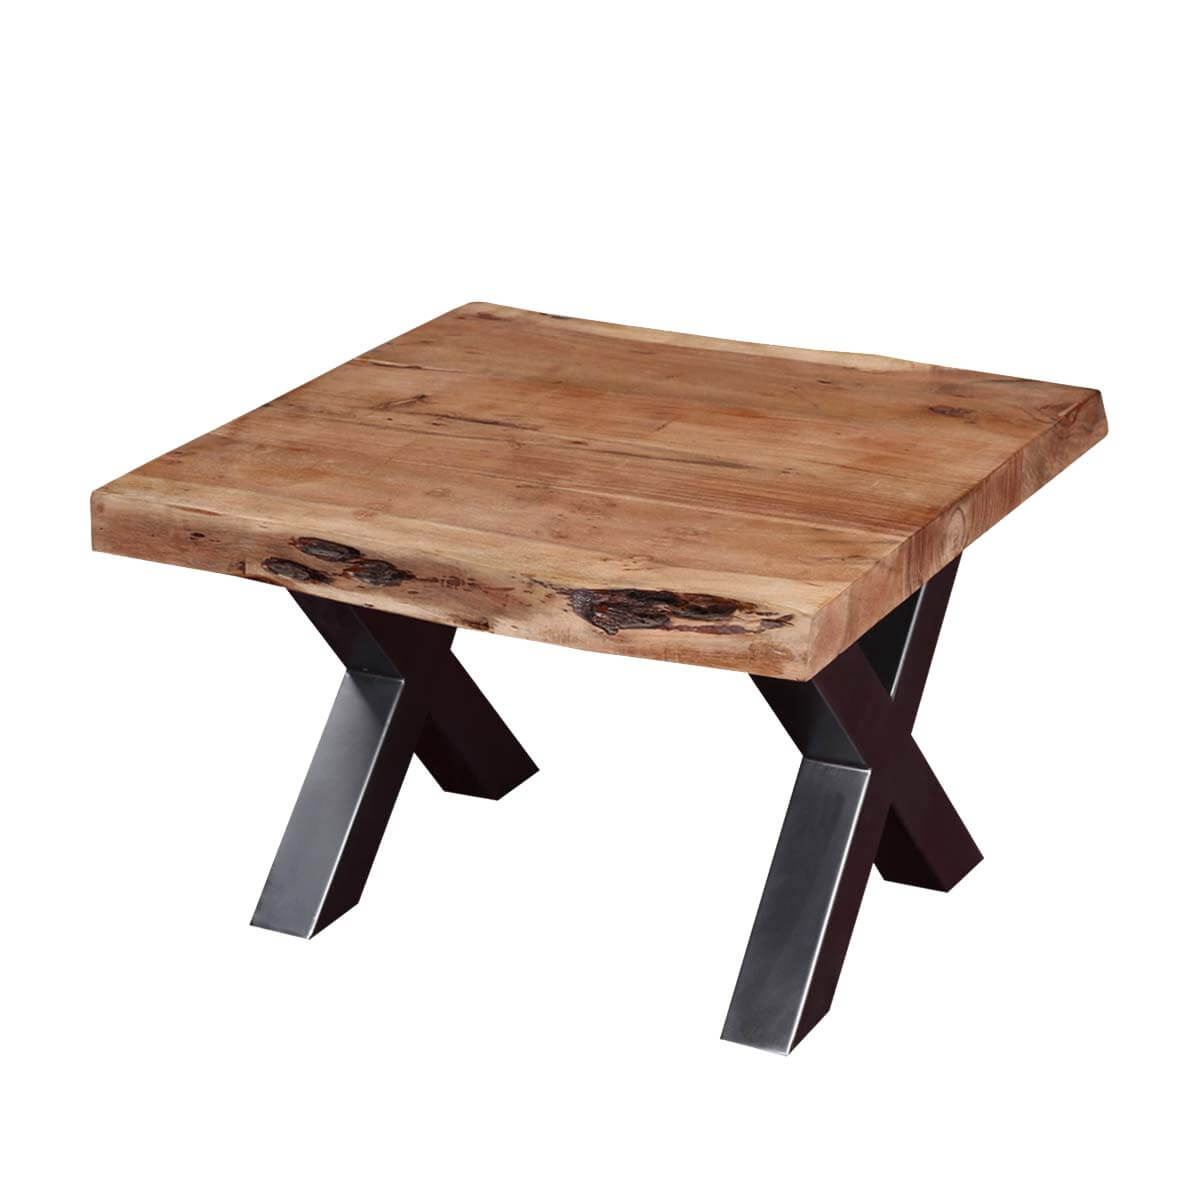 nic style acacia wood iron square live edge end table accent brown threshold hover zoom kirklands bar stools side round glass small tall pink cocktails low oval coffee tiffany